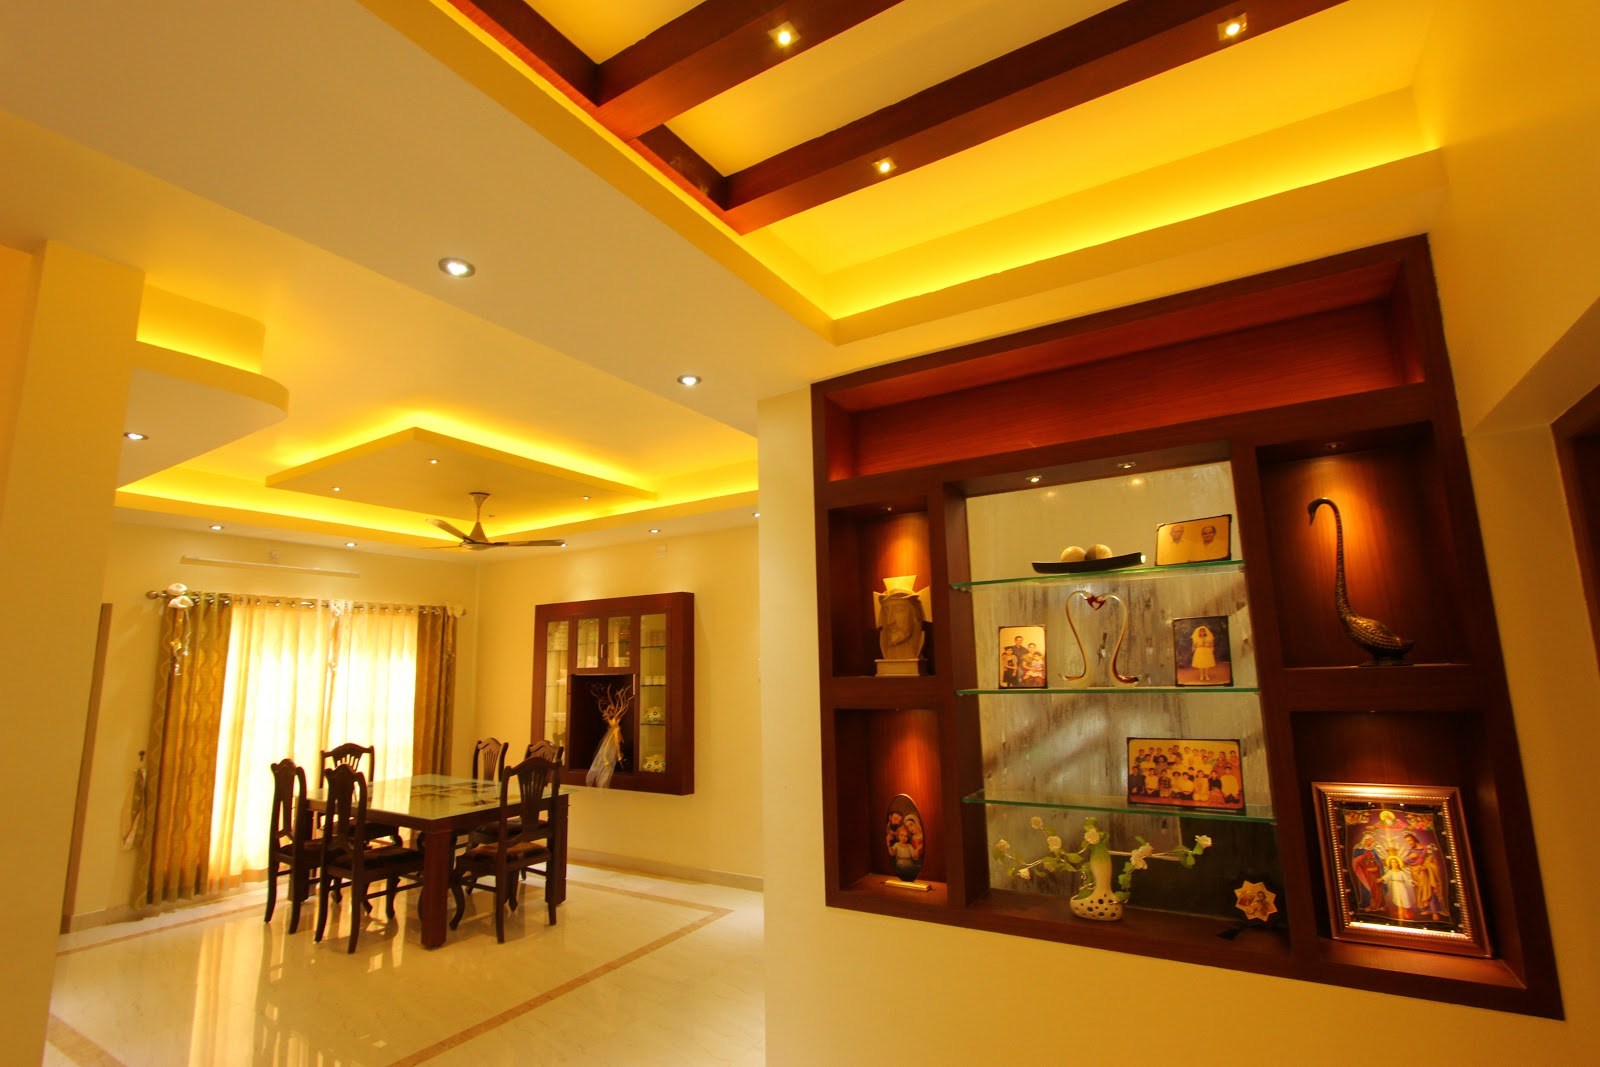 Shilpakala interiors award winning home interior design for Kerala home interior designs photos